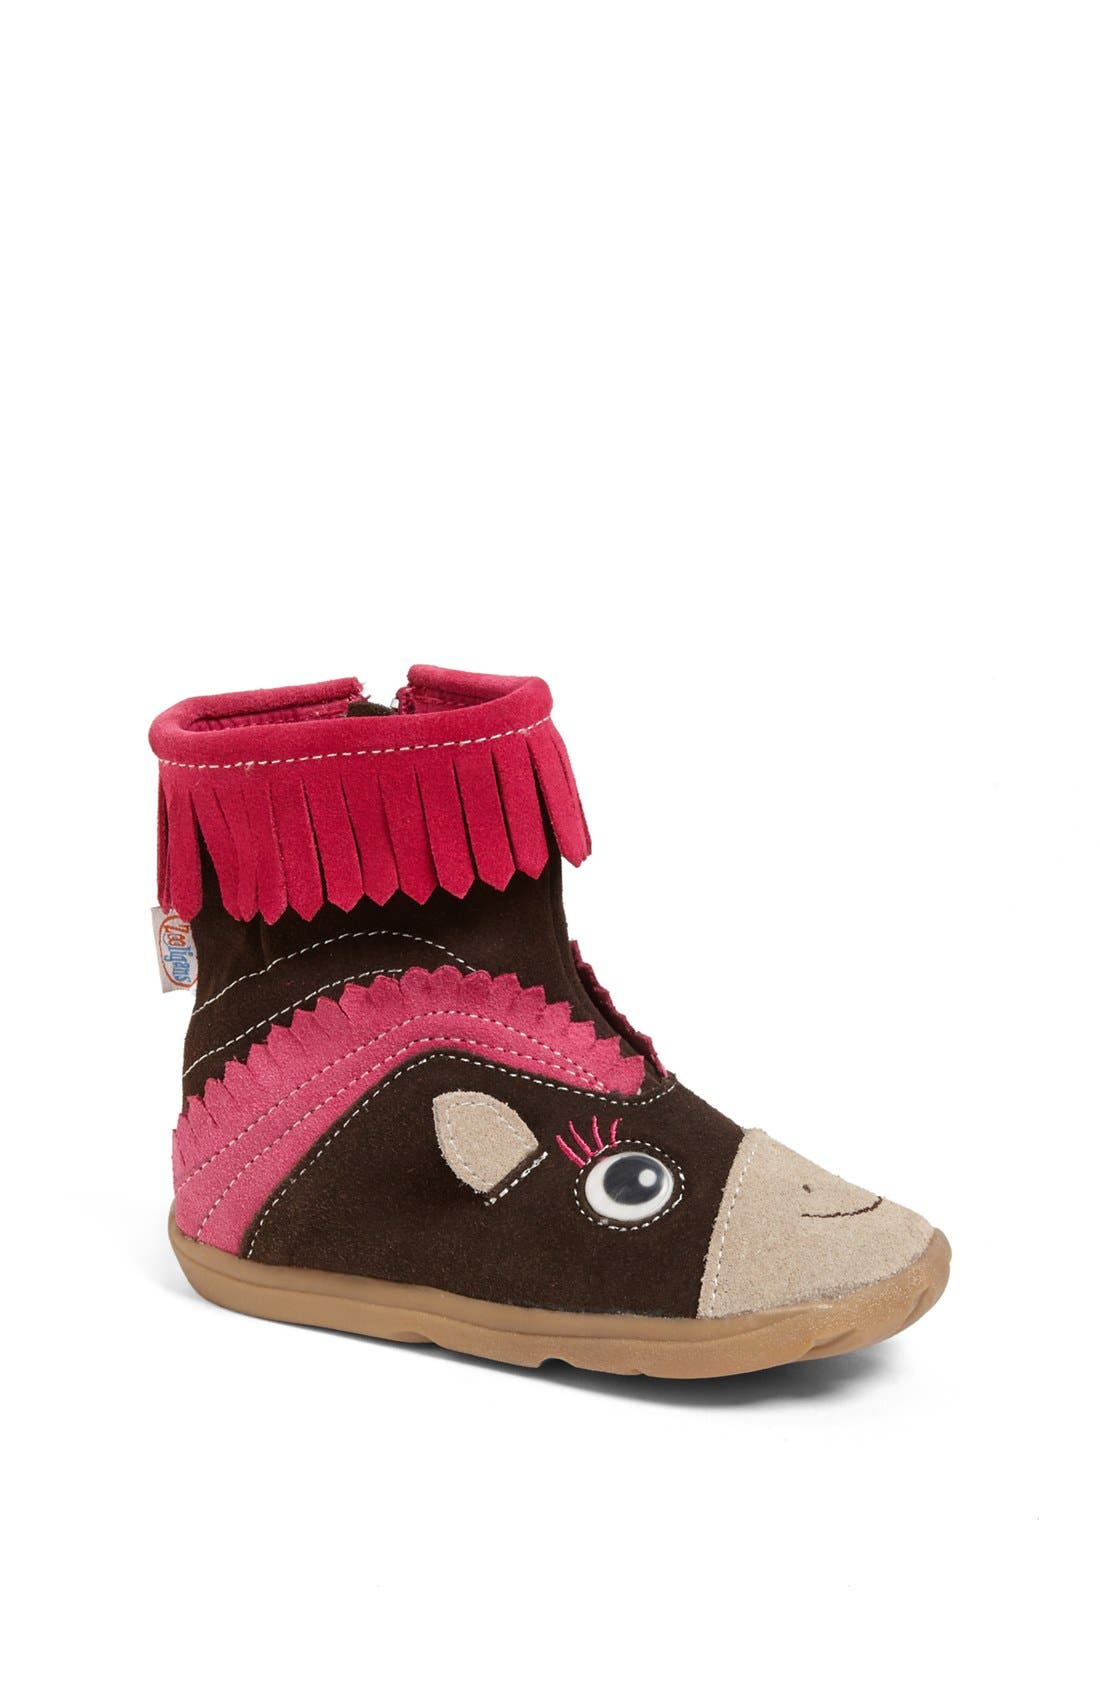 Alternate Image 1 Selected - Zooligans 'Paloma the Pony' Boot (Baby, Walker, Toddler & Little Kid)